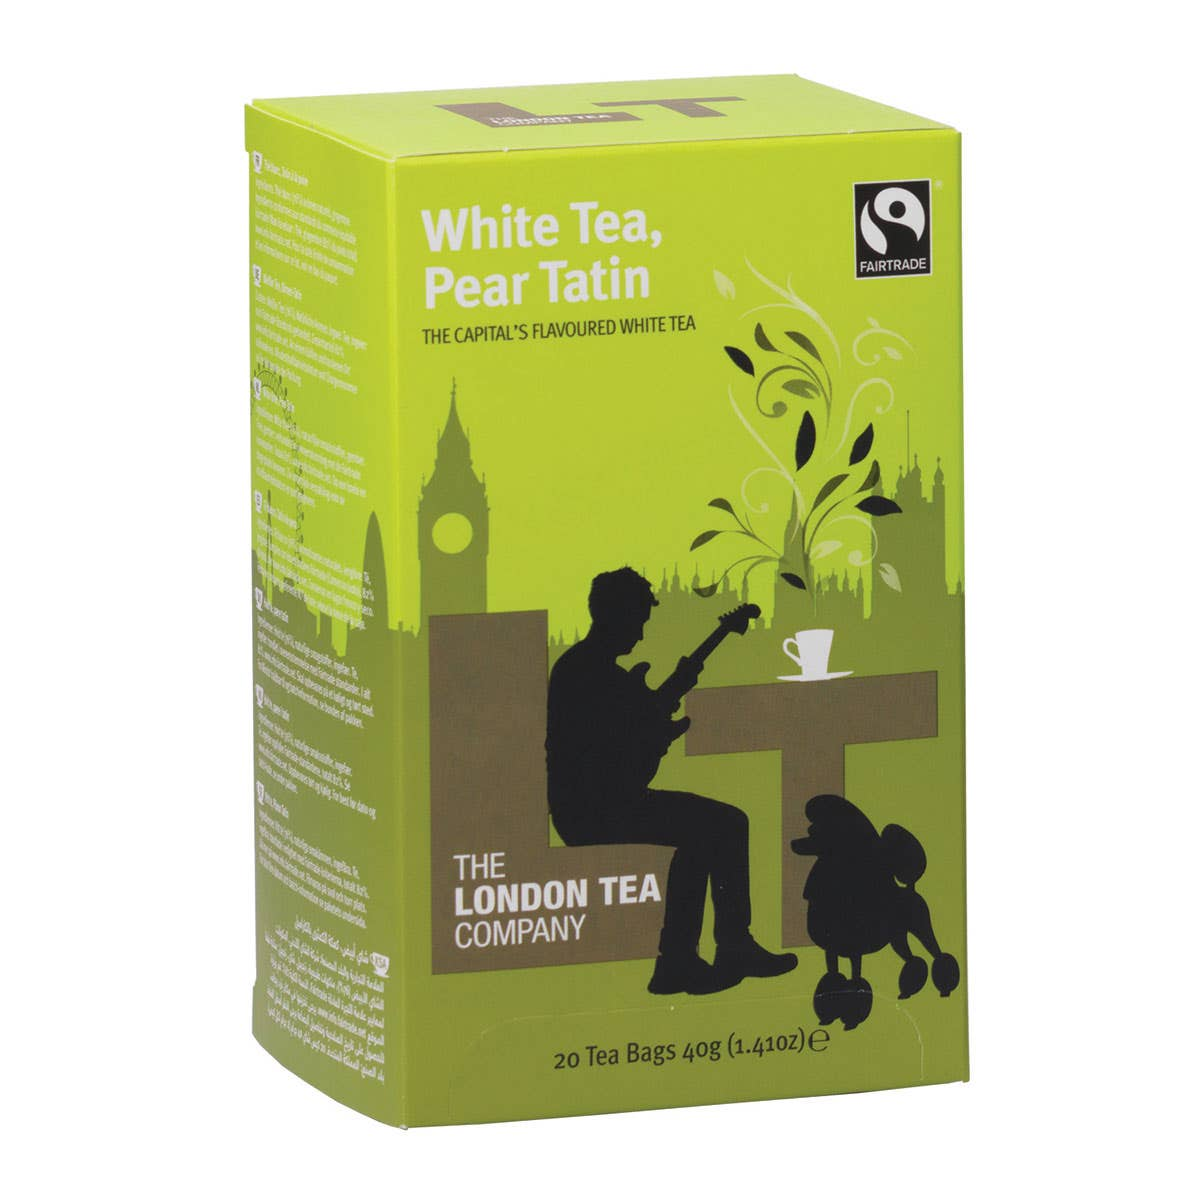 London Tea Company White Tea & Pear Tatin (20 bags) SINGLE